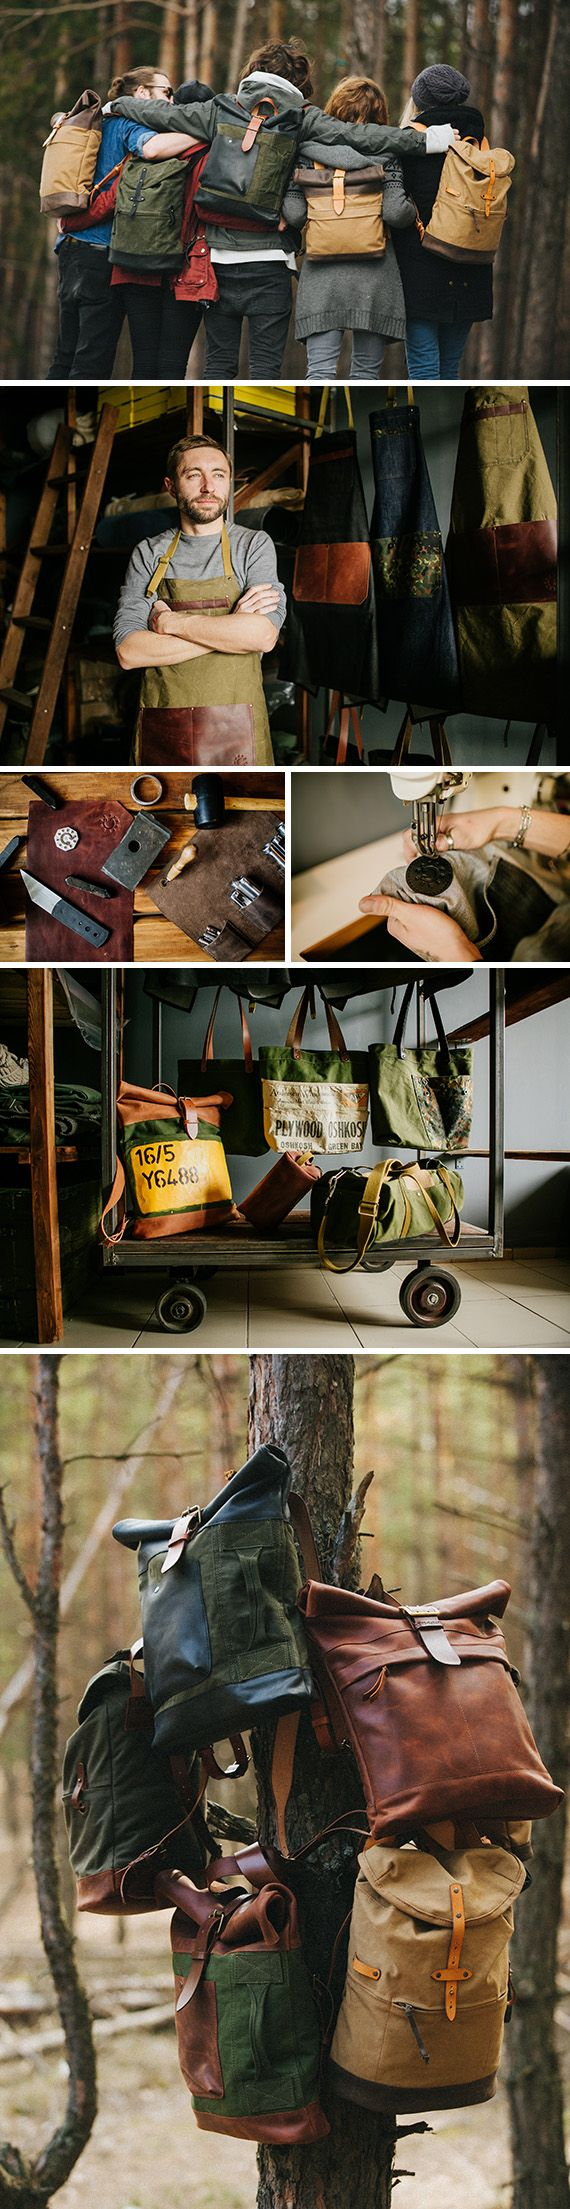 Made with vintage military surplus materials and leather, Kruk Garage's limited-edition bags are ones you'll want to keep for a lifetime. Read the story behind this shop on the Etsy Blog.